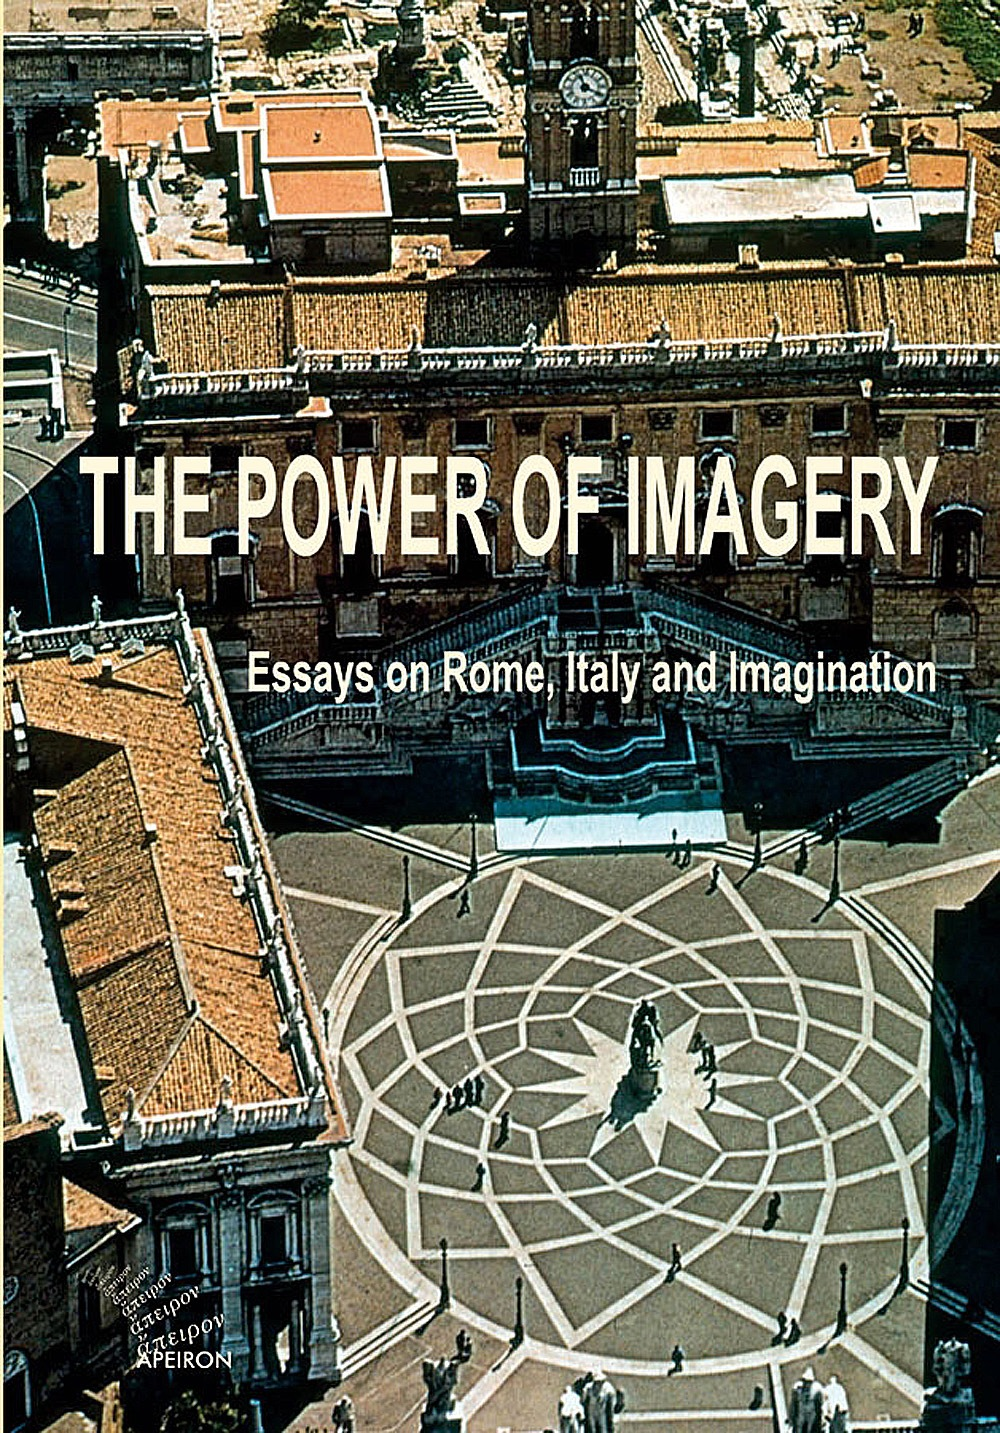 Power of Imagery: Essays on Rome, Italy & Imagination